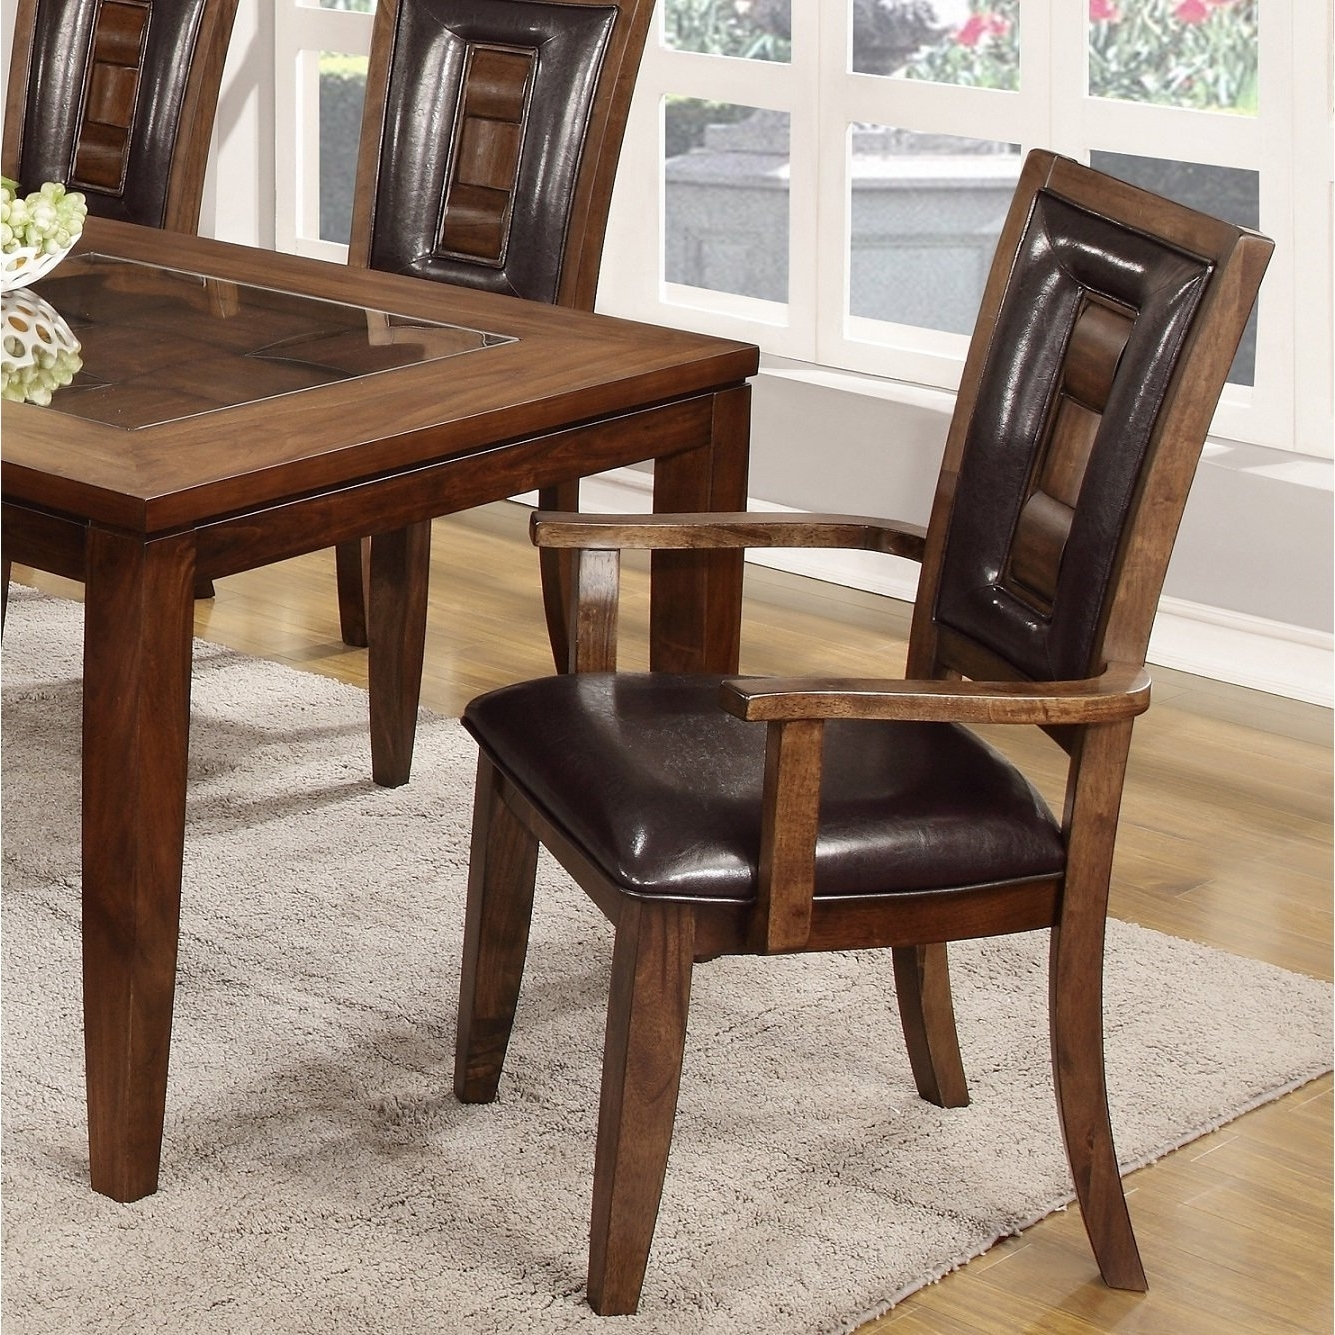 2018 Parquet 7 Piece Dining Sets Regarding Shop Calais 7 Piece Parquet Finish Solid Wood Dining Table With  (View 4 of 25)